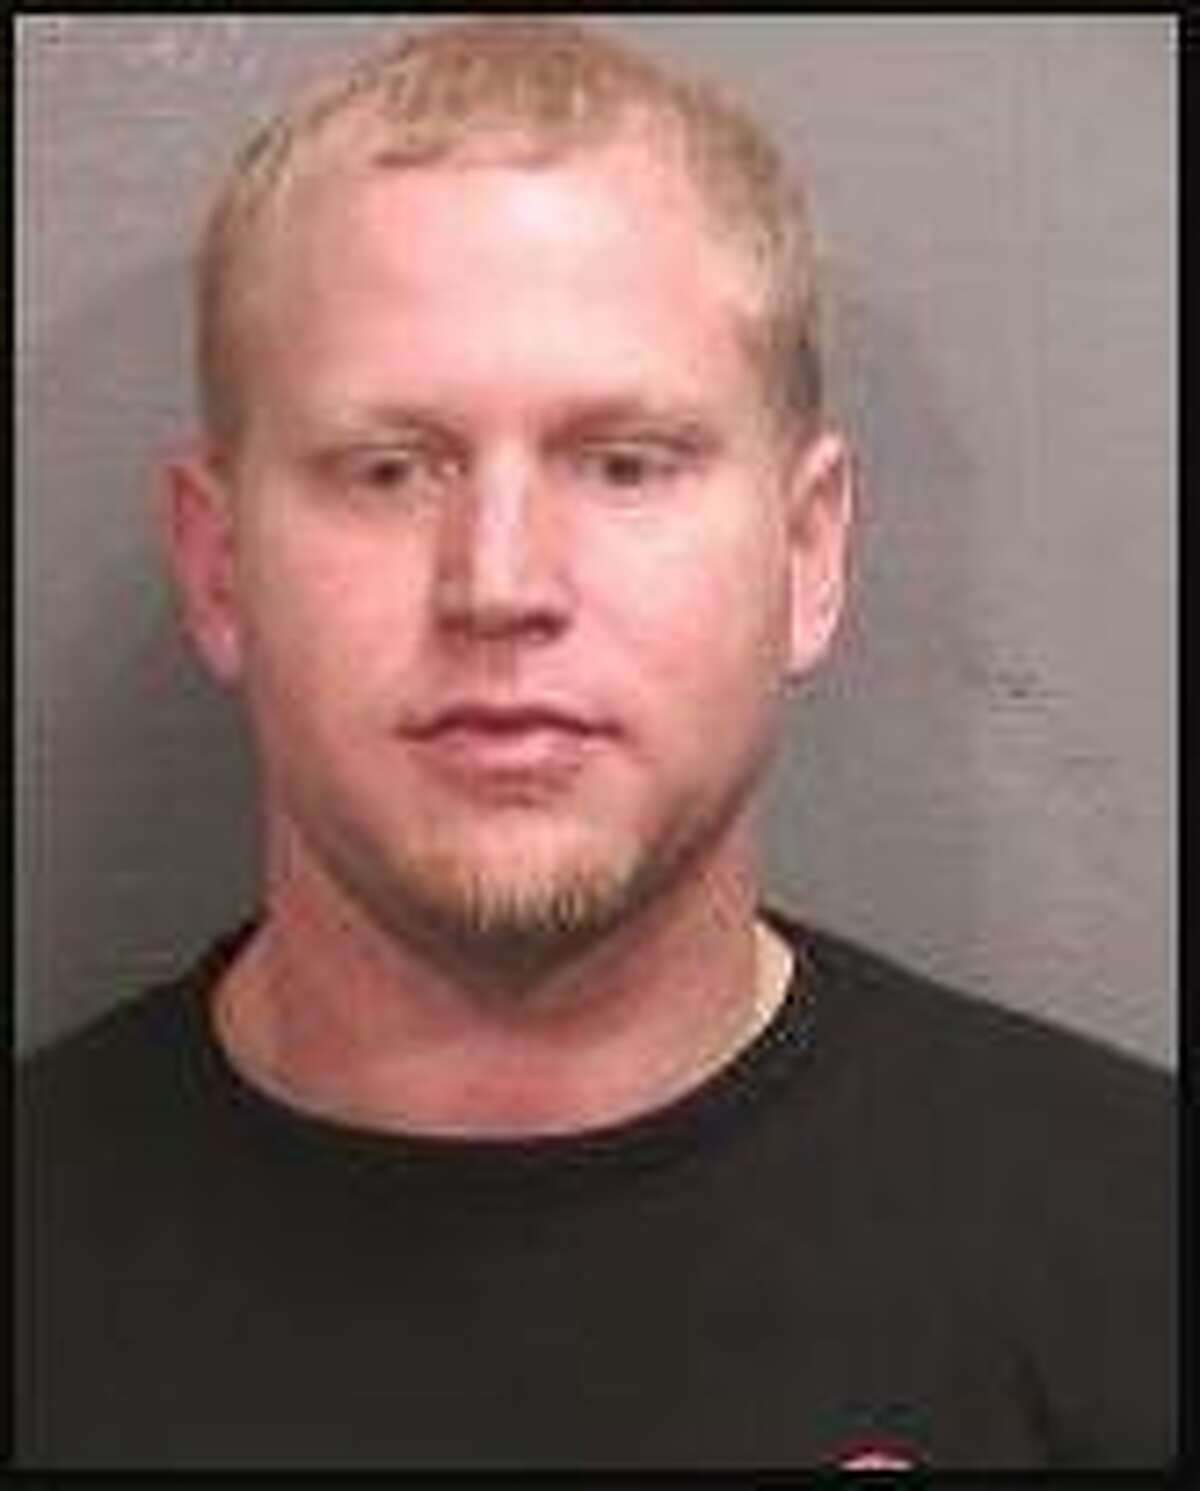 Seen in a prior offense booking photo, Joshua Alan Mann, 36, is facingone charge of intoxicated manslaughter and two charges ofintoxicated assaulted.